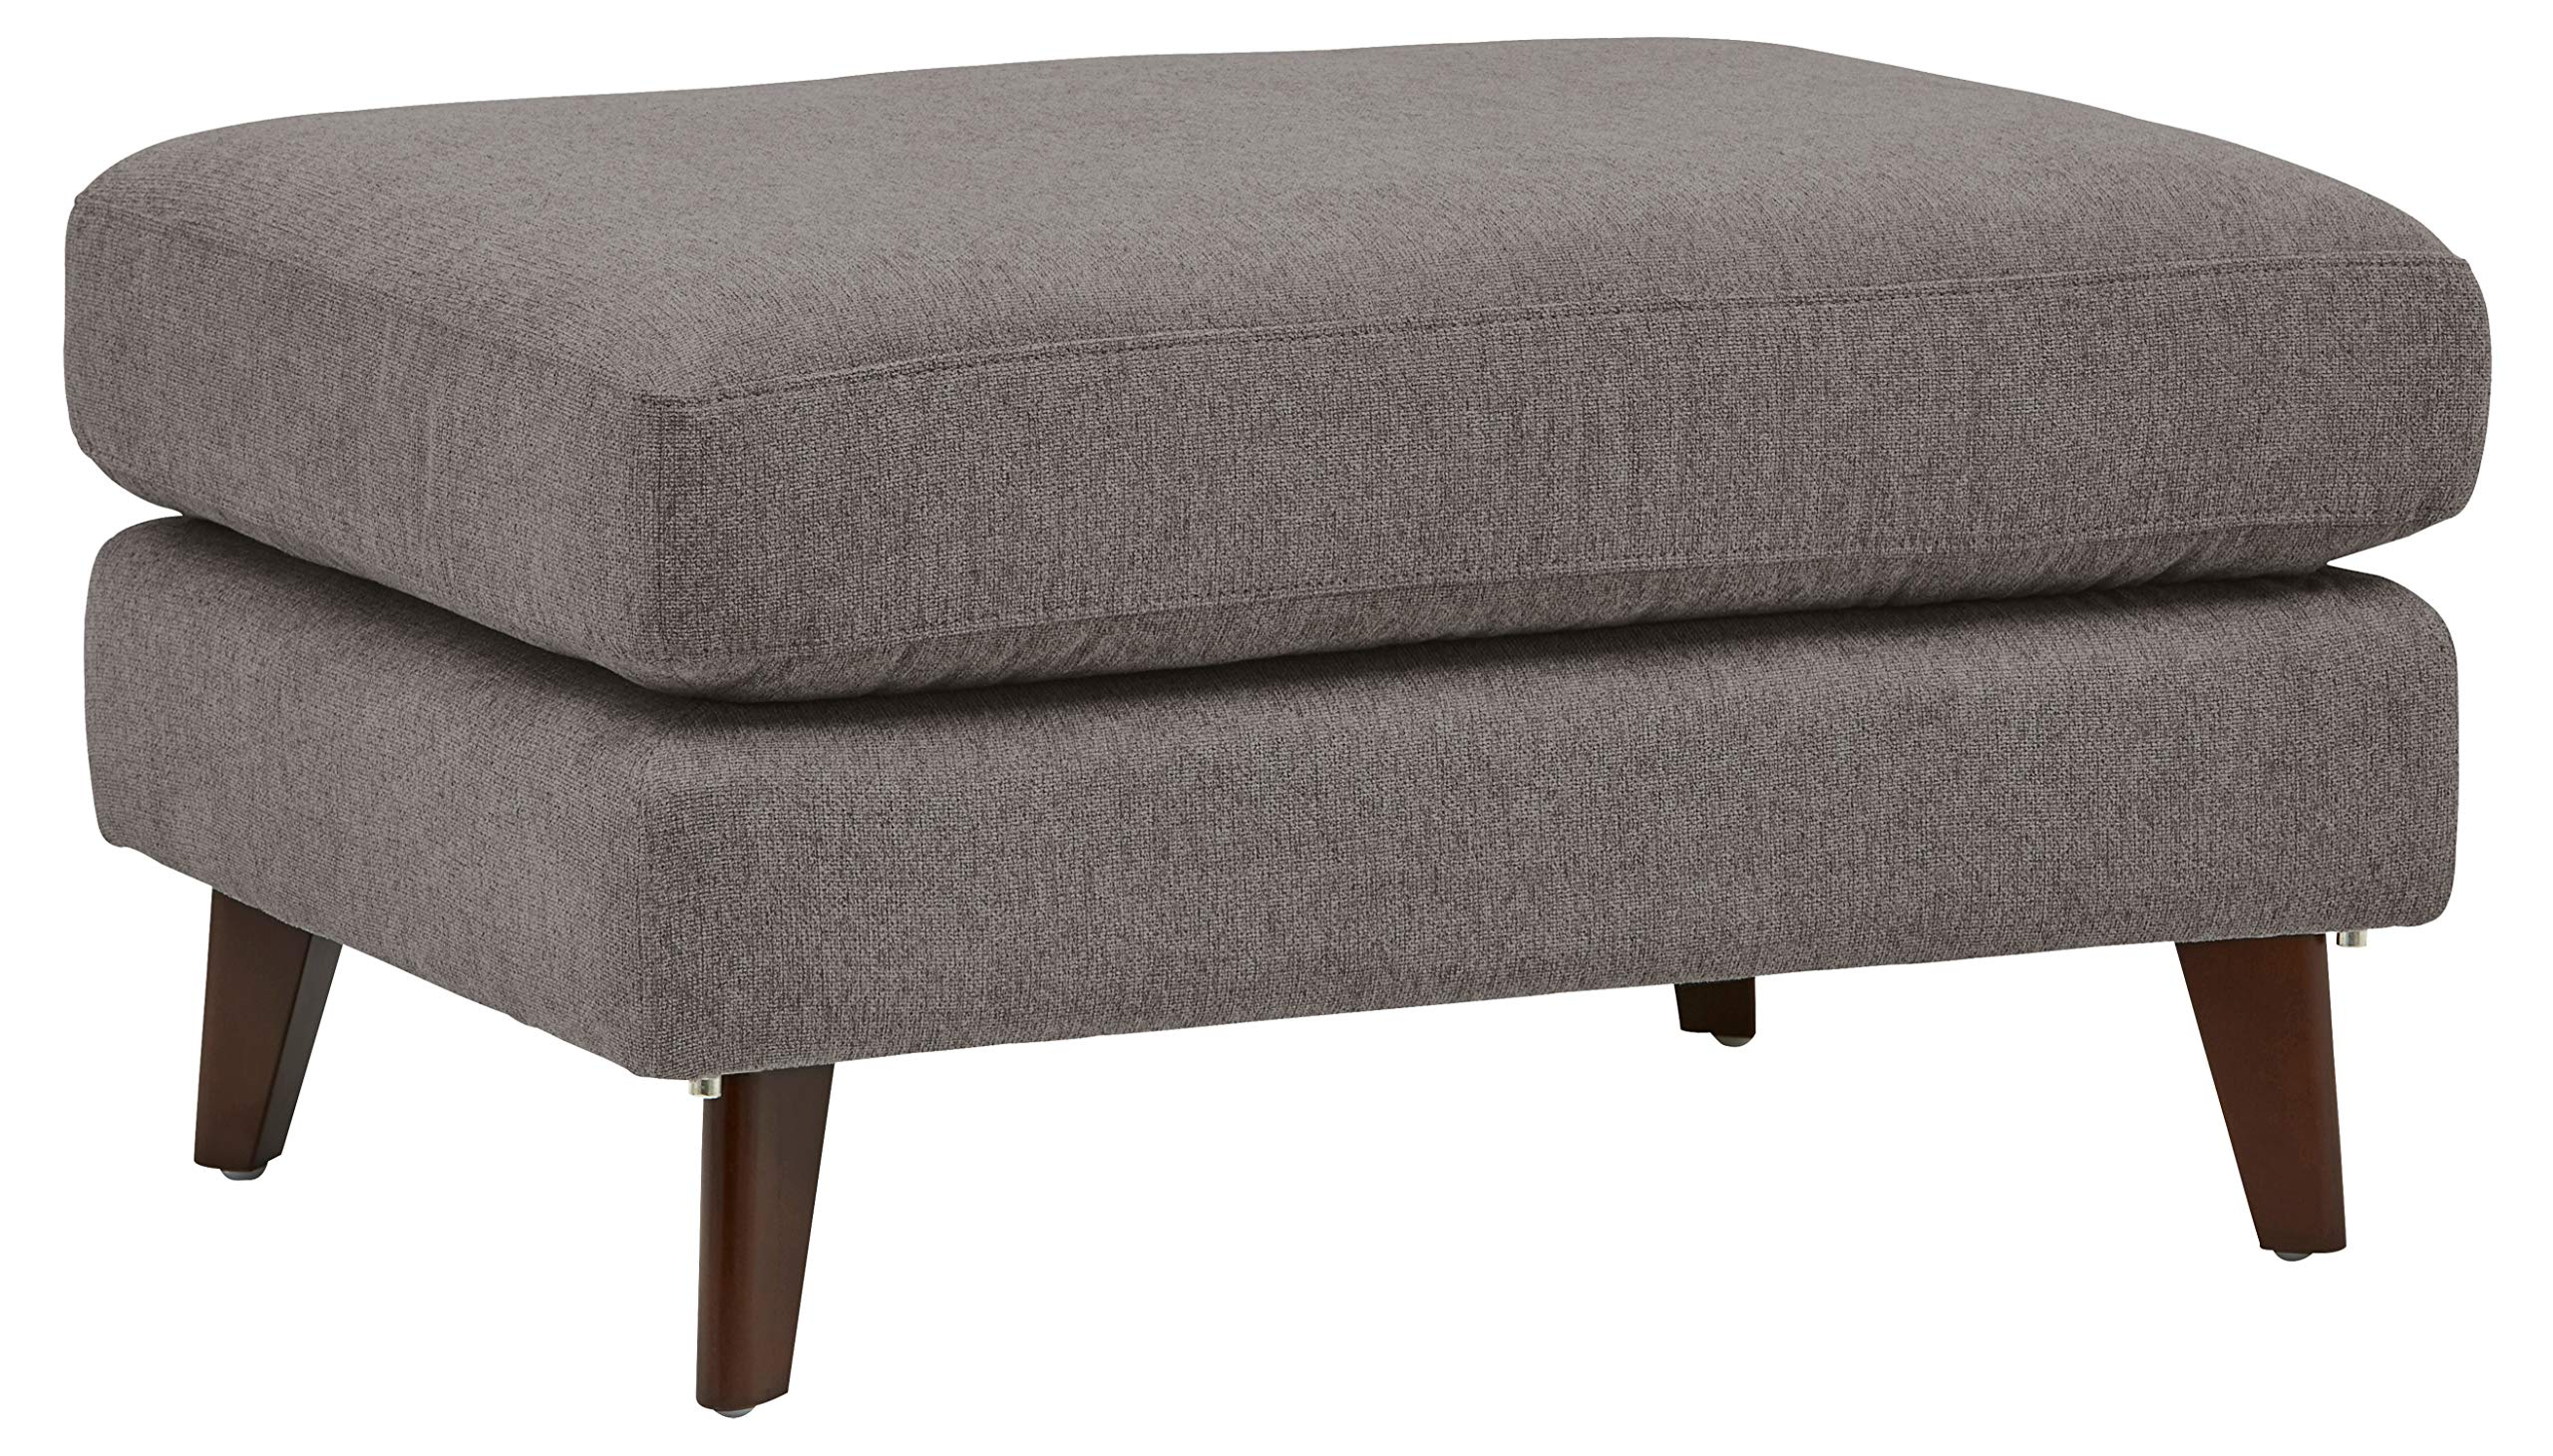 Rivet Sloane Mid-Century Modern Ottoman with Tapered Legs, 31.9''W, Storm Gray by Rivet